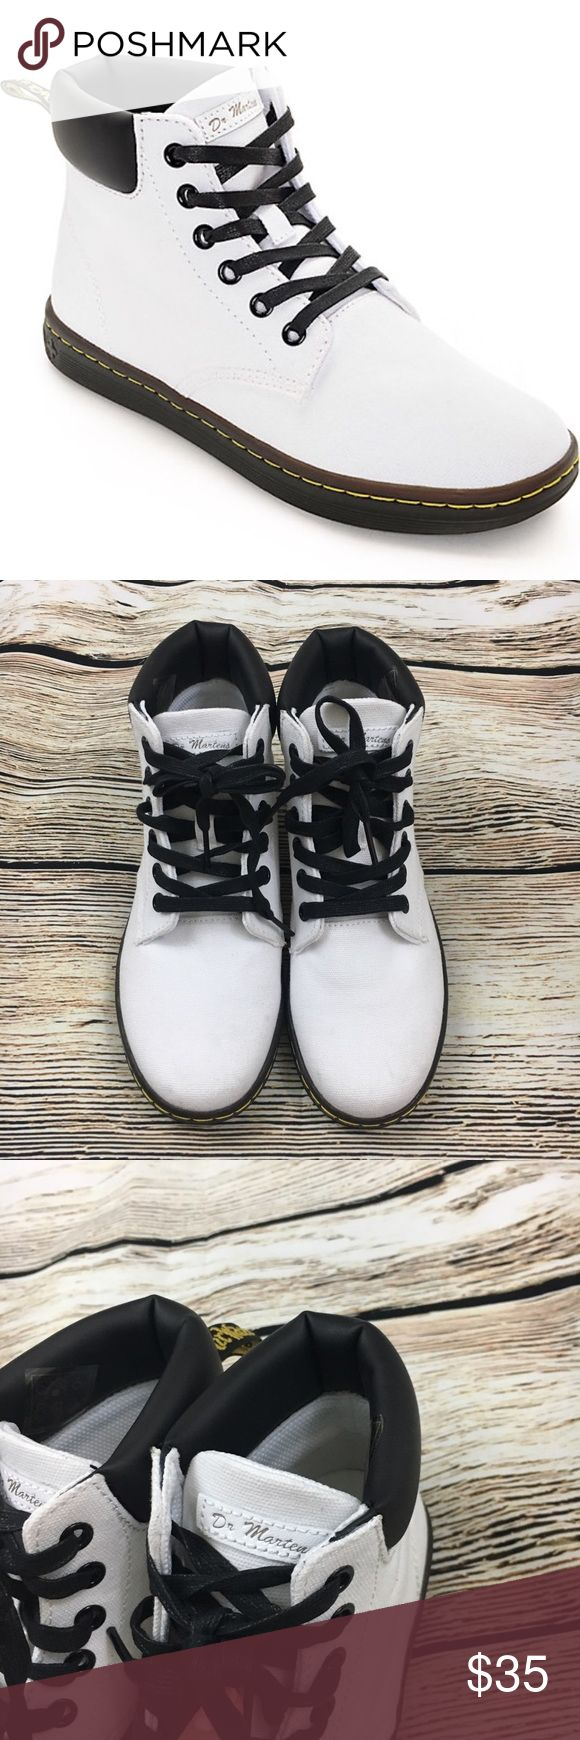 Dr martens Maelly white lace up tennis shoe 5 White canvas tennis shoes with black laces, new without box, minor marks around shoes from lack of being stored in box. Priced accordingly! Dr. Martens Shoes Sneakers